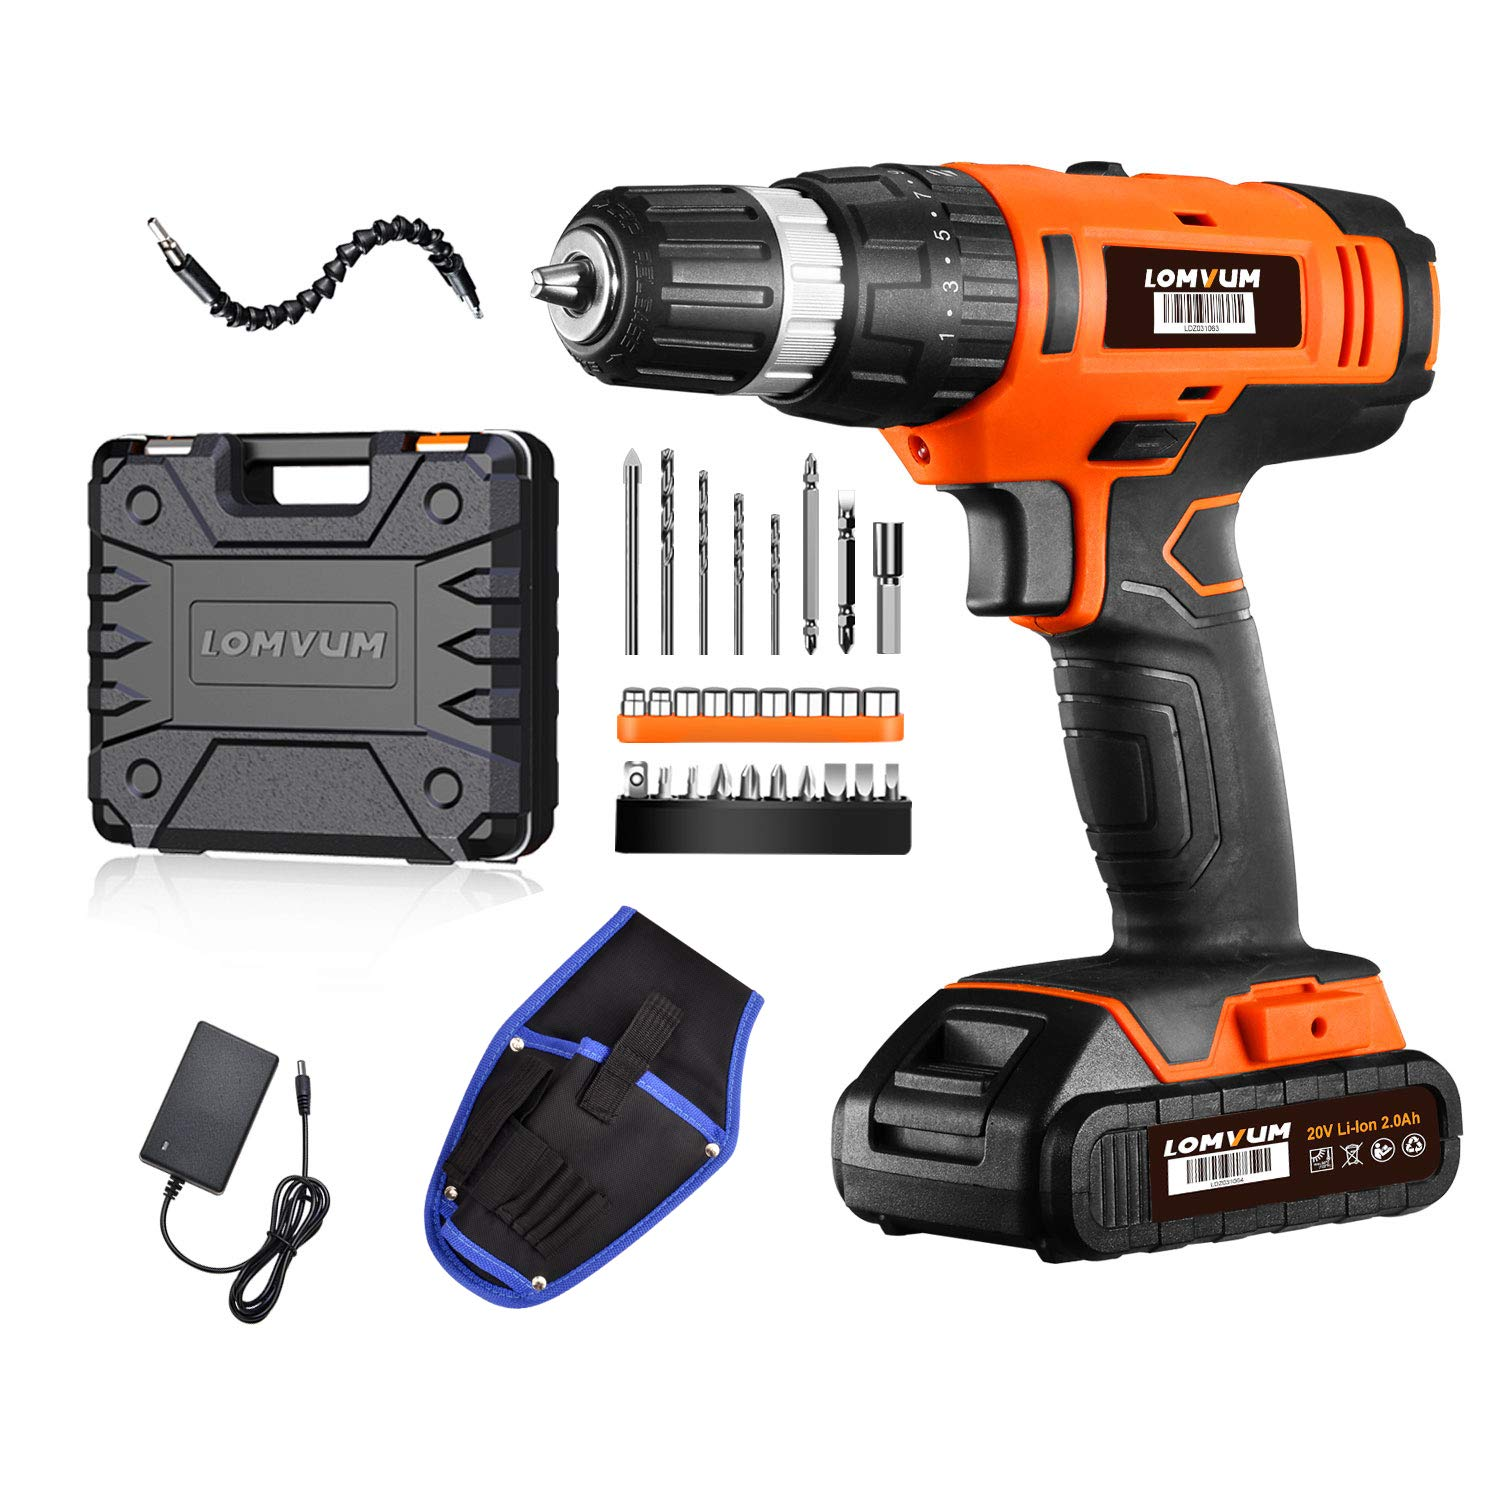 Cordless Drill Driver Lomvum 20V Power Drill with Lithium-ion Batterry, 1 Faster Charger, 2-Speed 3 8 Keyless Chuck, Magnetic Flexible Shaft,LED, Waist Bag, Compact Case, Extra 46pcs Accessories